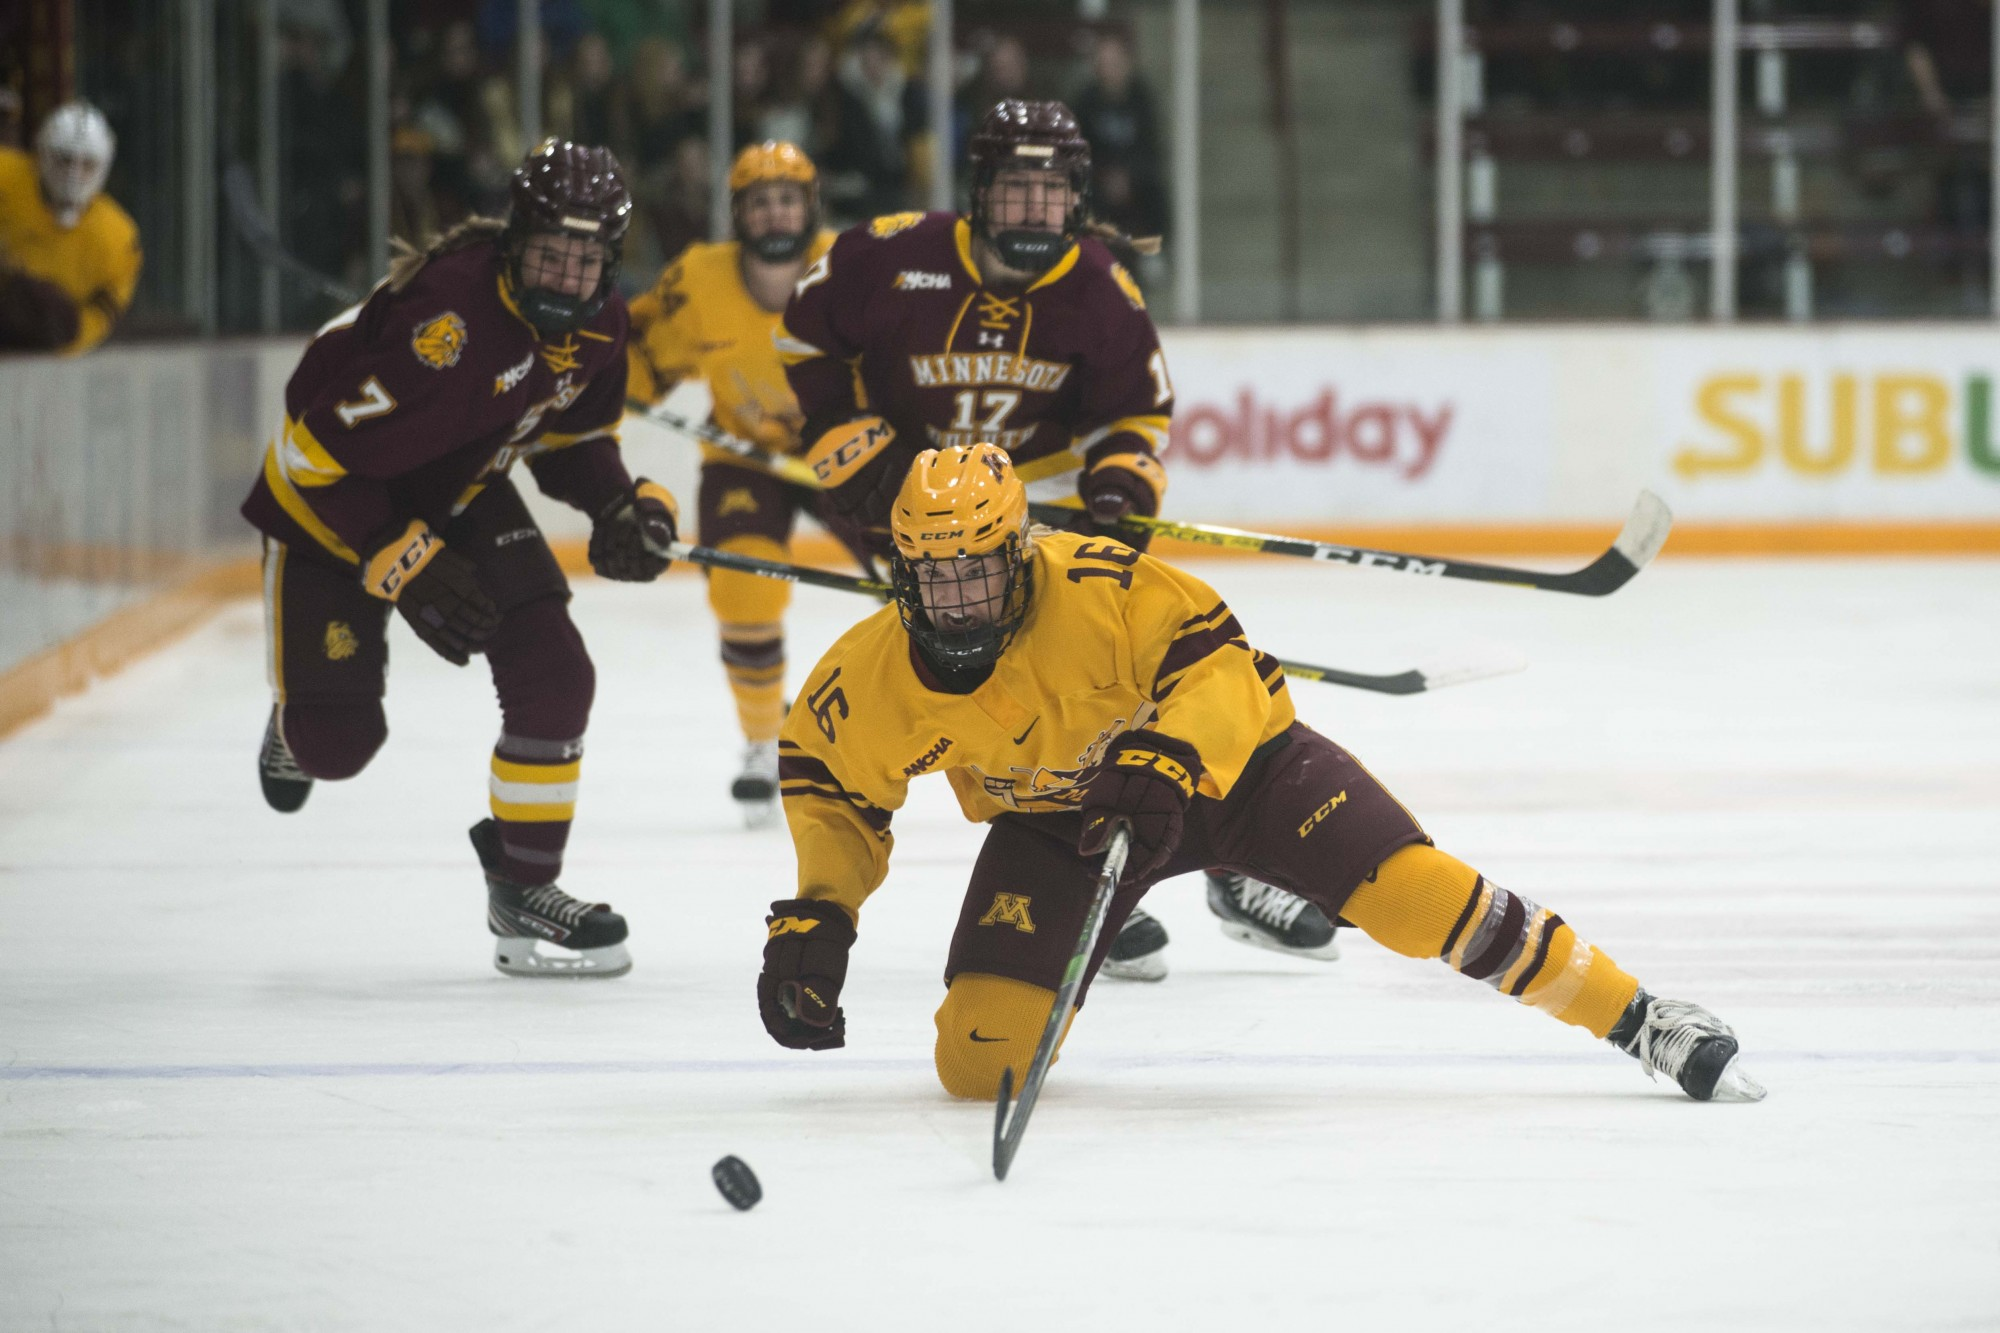 Forward Amy Potomak lunges for the puck at Ridder Arena on Saturday, Feb. 1. The Gophers lost to Minnesota Duluth 0-2.